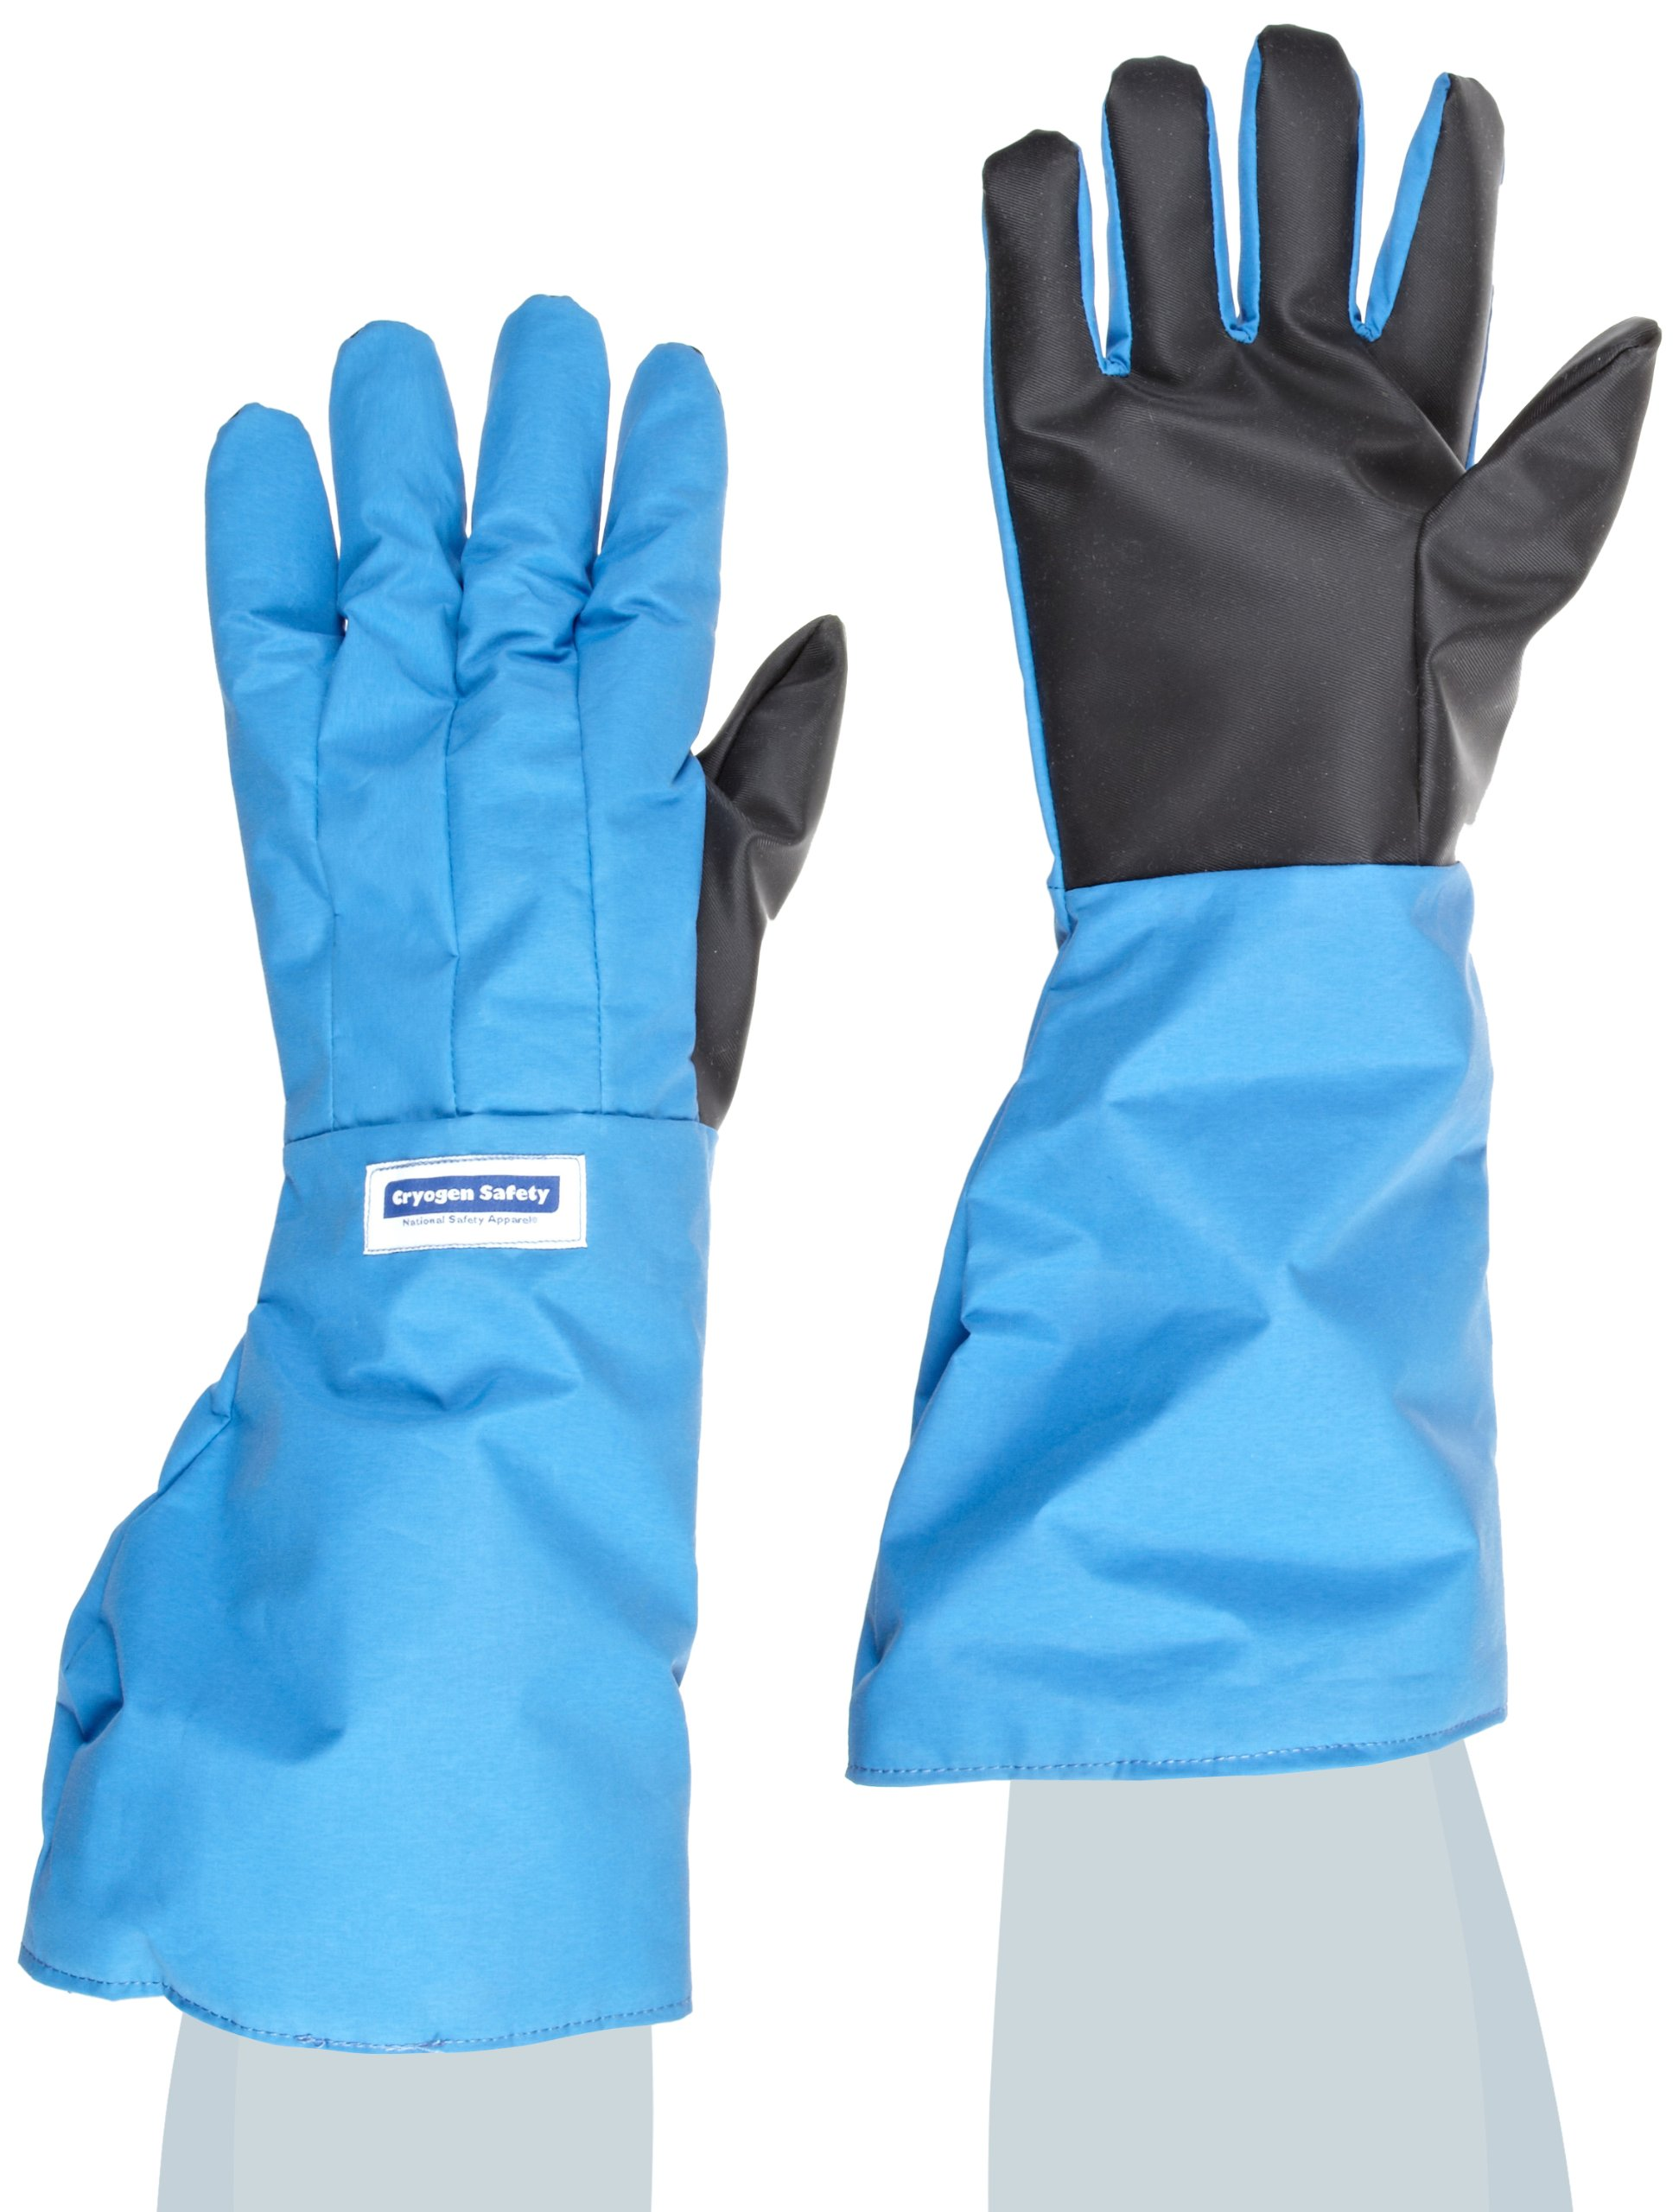 National Safety Apparel G99CRSGPLGEL Nylon Taslan and PTFE Elbow Waterproof Safety Glove with SaferGrip Palm, Cryogenic, 17'' - 18'' Length, Large, Blue